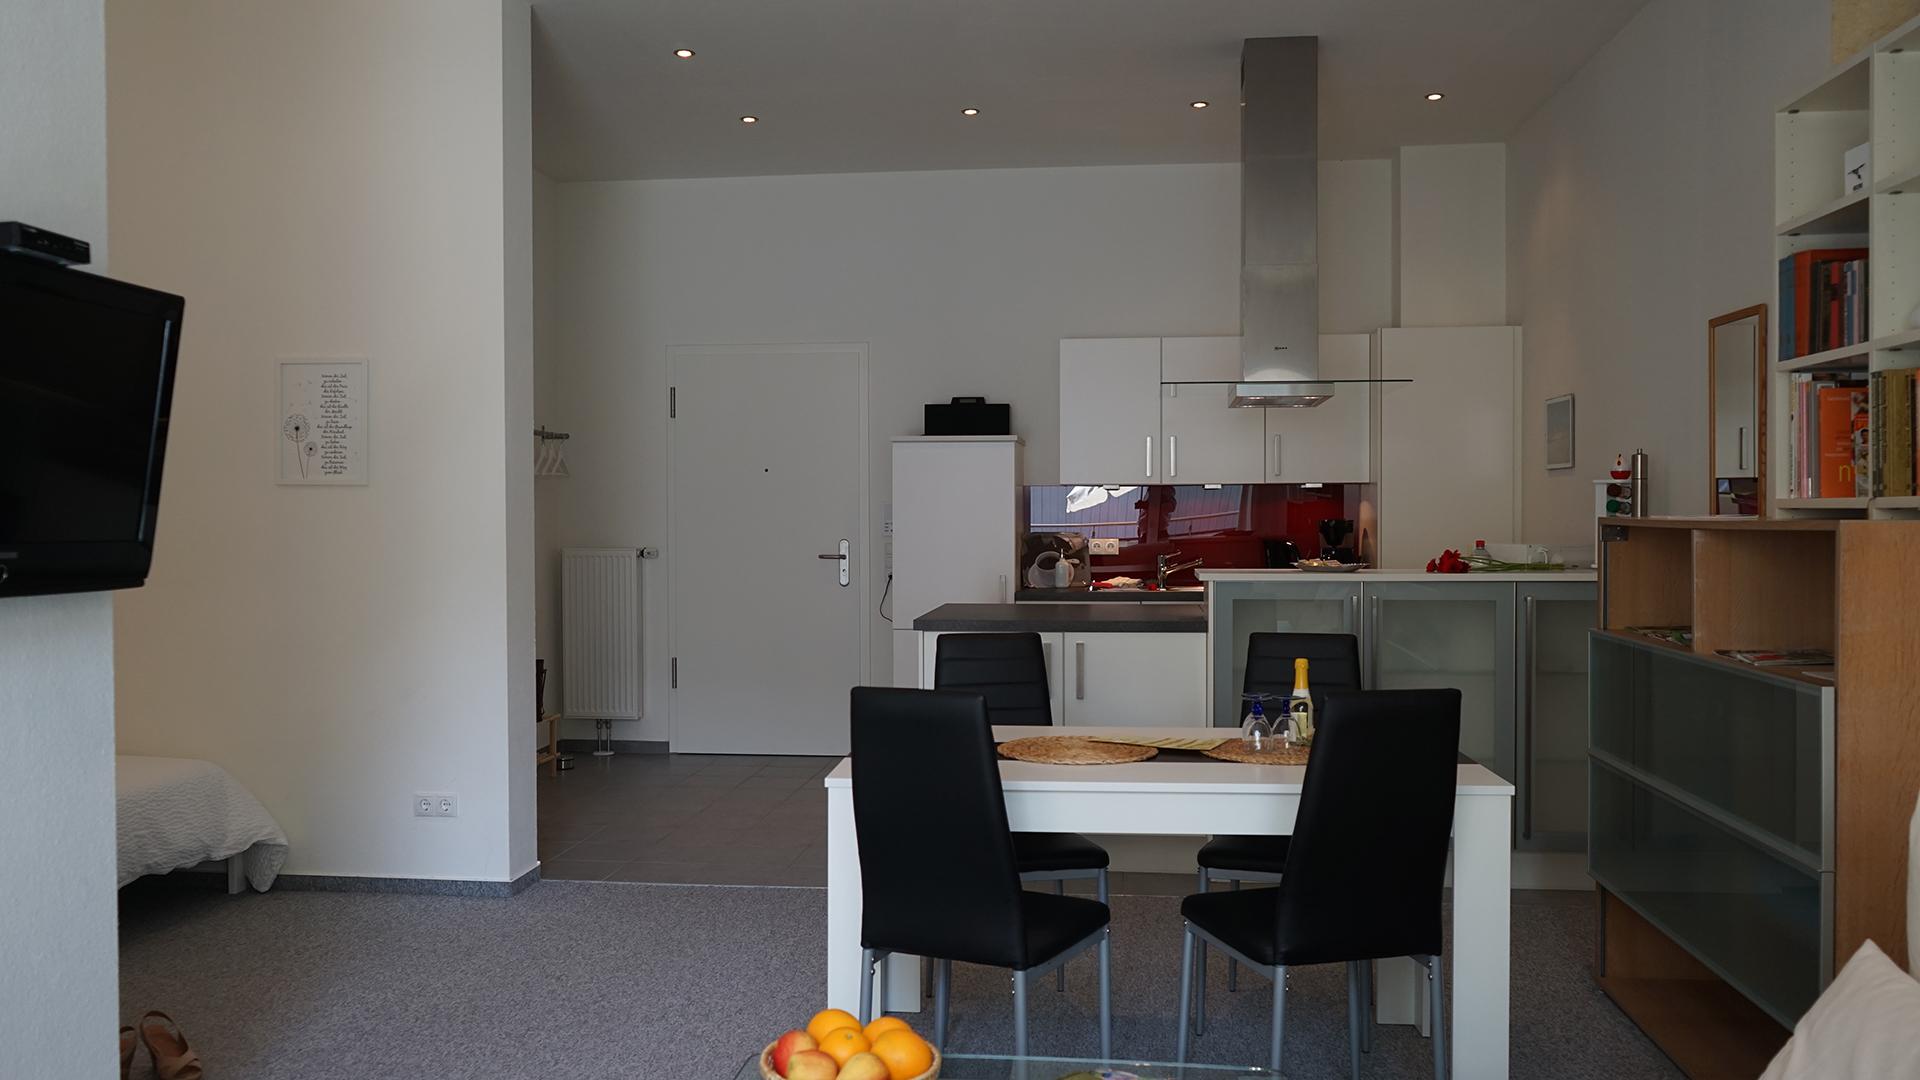 Holiday apartments on Lake Constance: Deluxe - Dining & Cooking